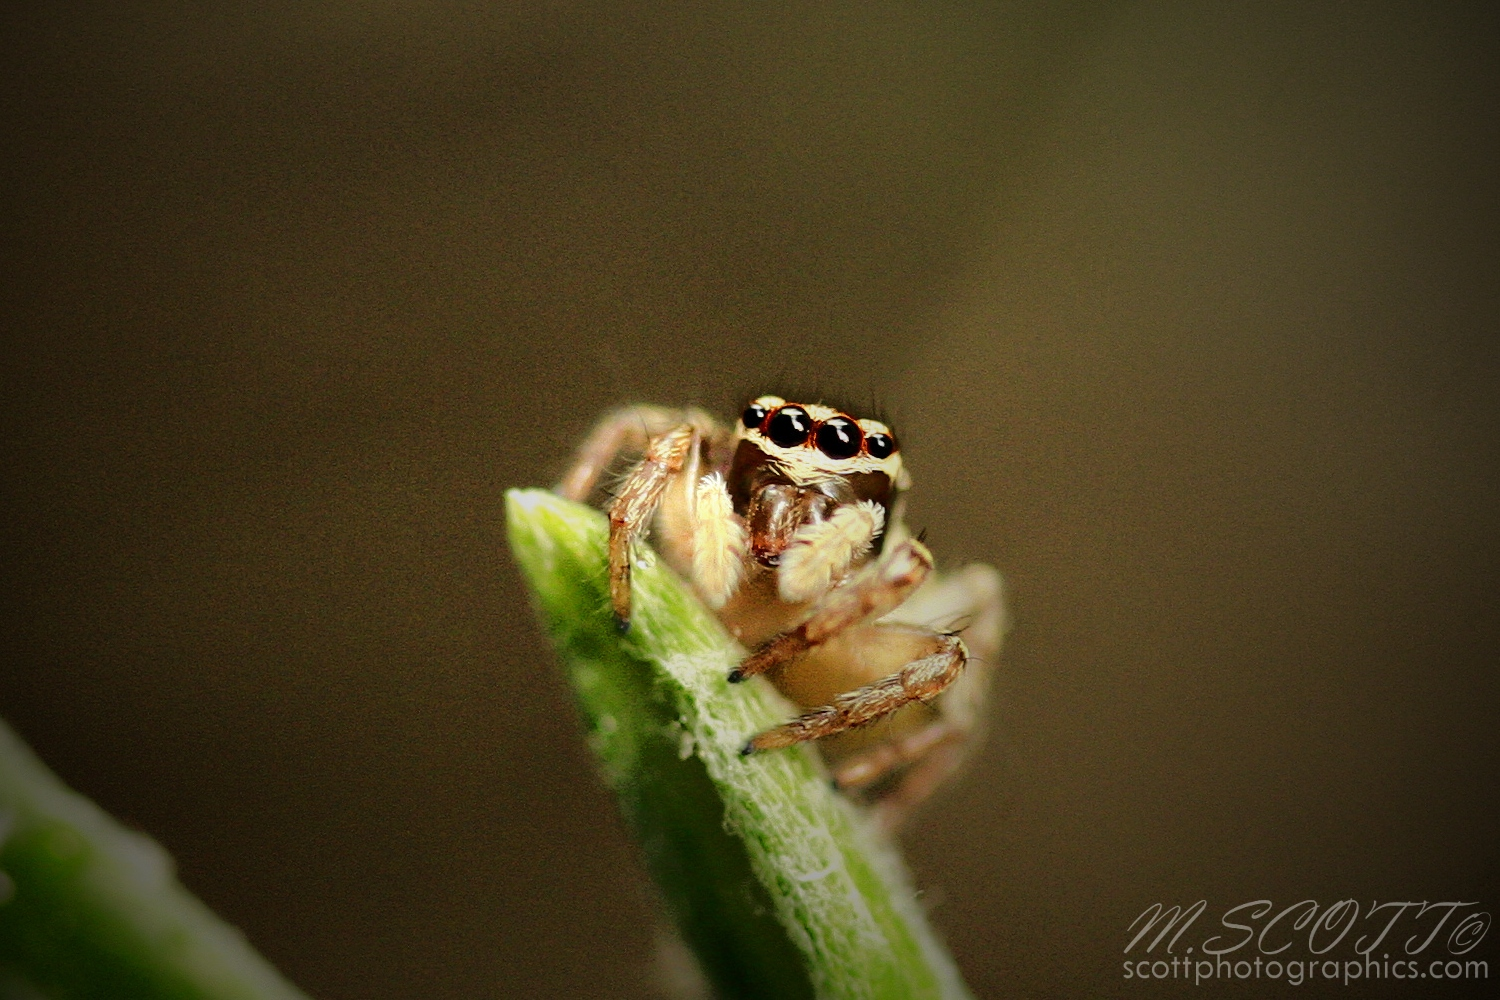 https://www.images.scottphotographics.com/shot-of-the-day/%2332/jumping-spider-macro-close-up-2.jpg